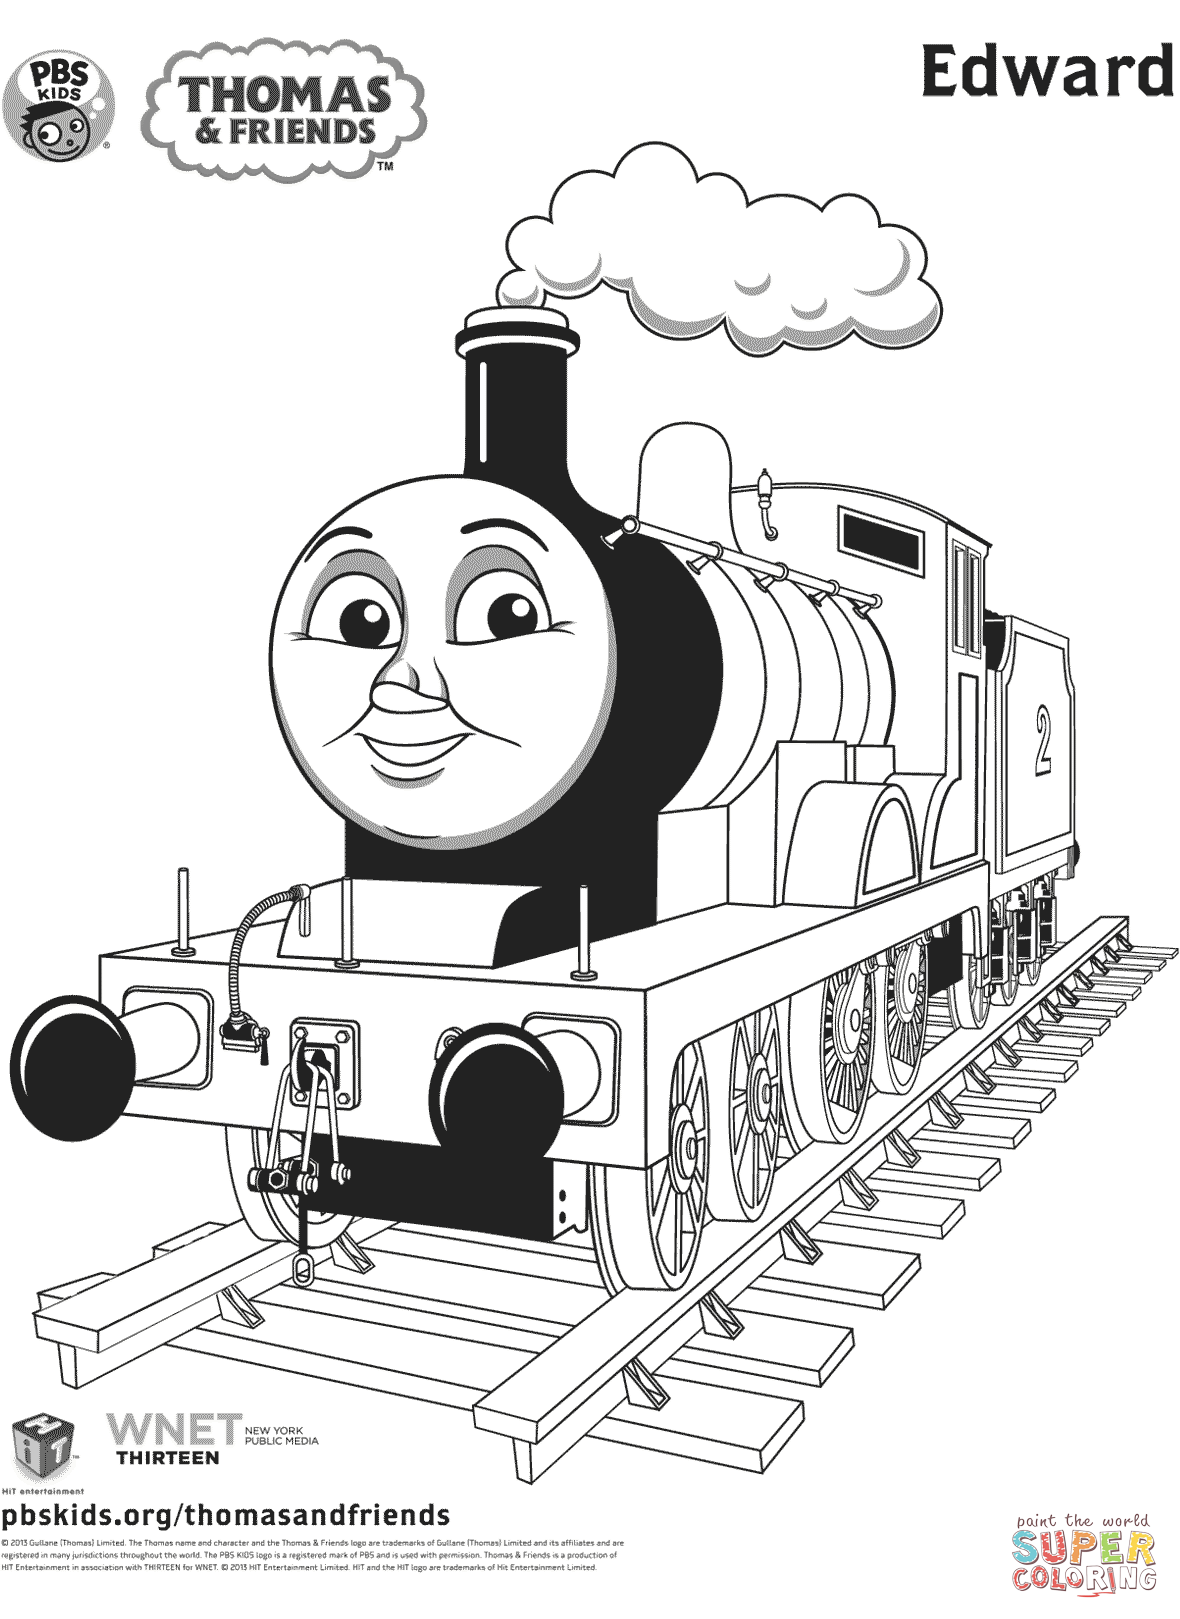 coloring pages of thomas and friends thomas and friends coloring pages coloring pages to of and thomas pages coloring friends